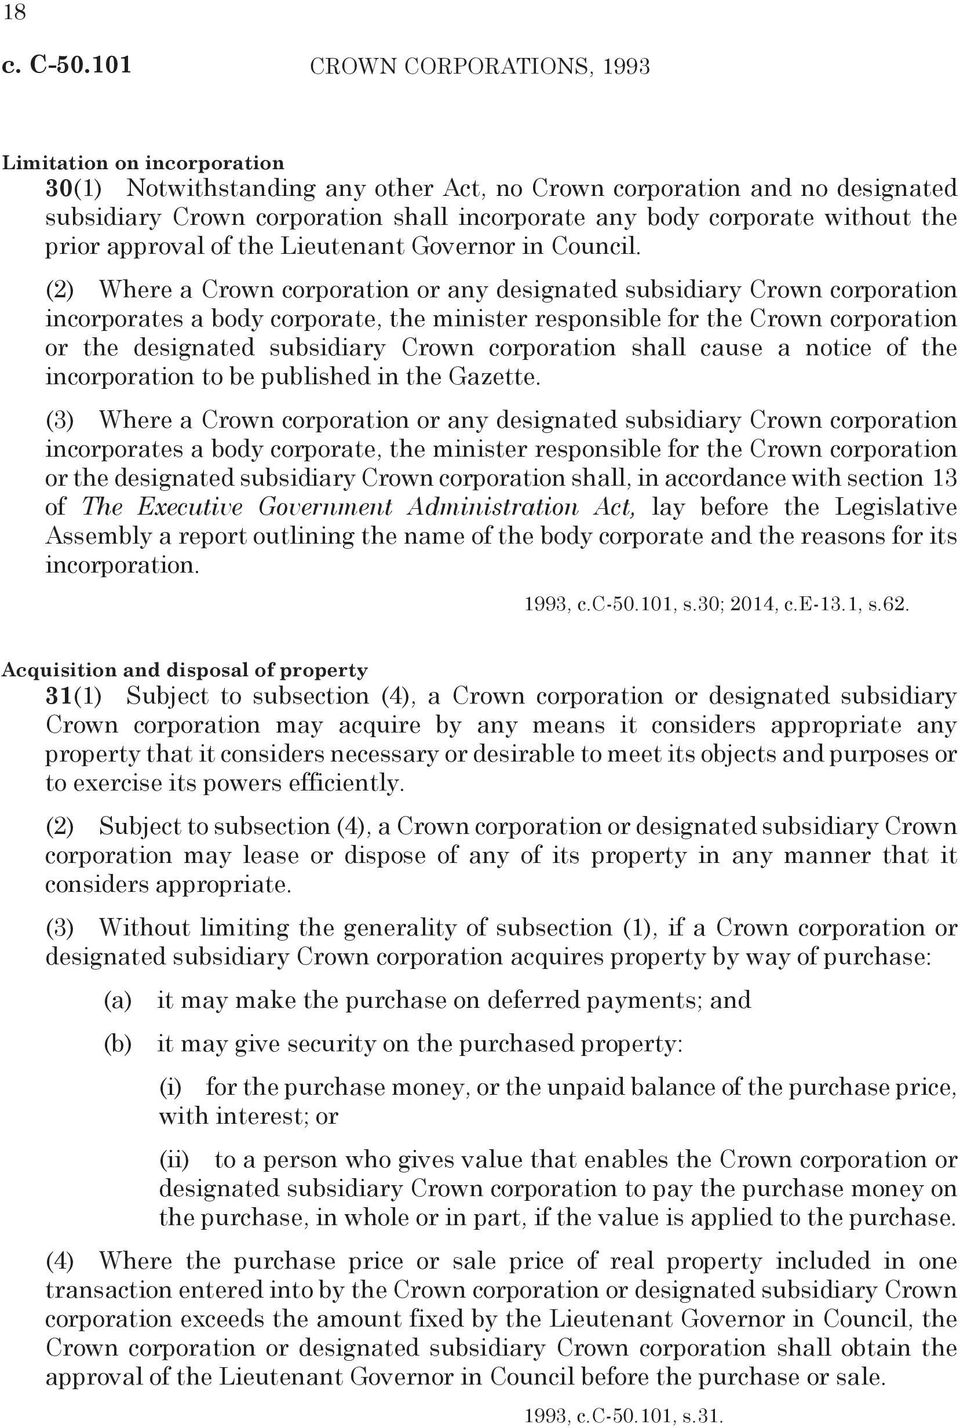 (2) Where a Crown corporation or any designated subsidiary Crown corporation incorporates a body corporate, the minister responsible for the Crown corporation or the designated subsidiary Crown